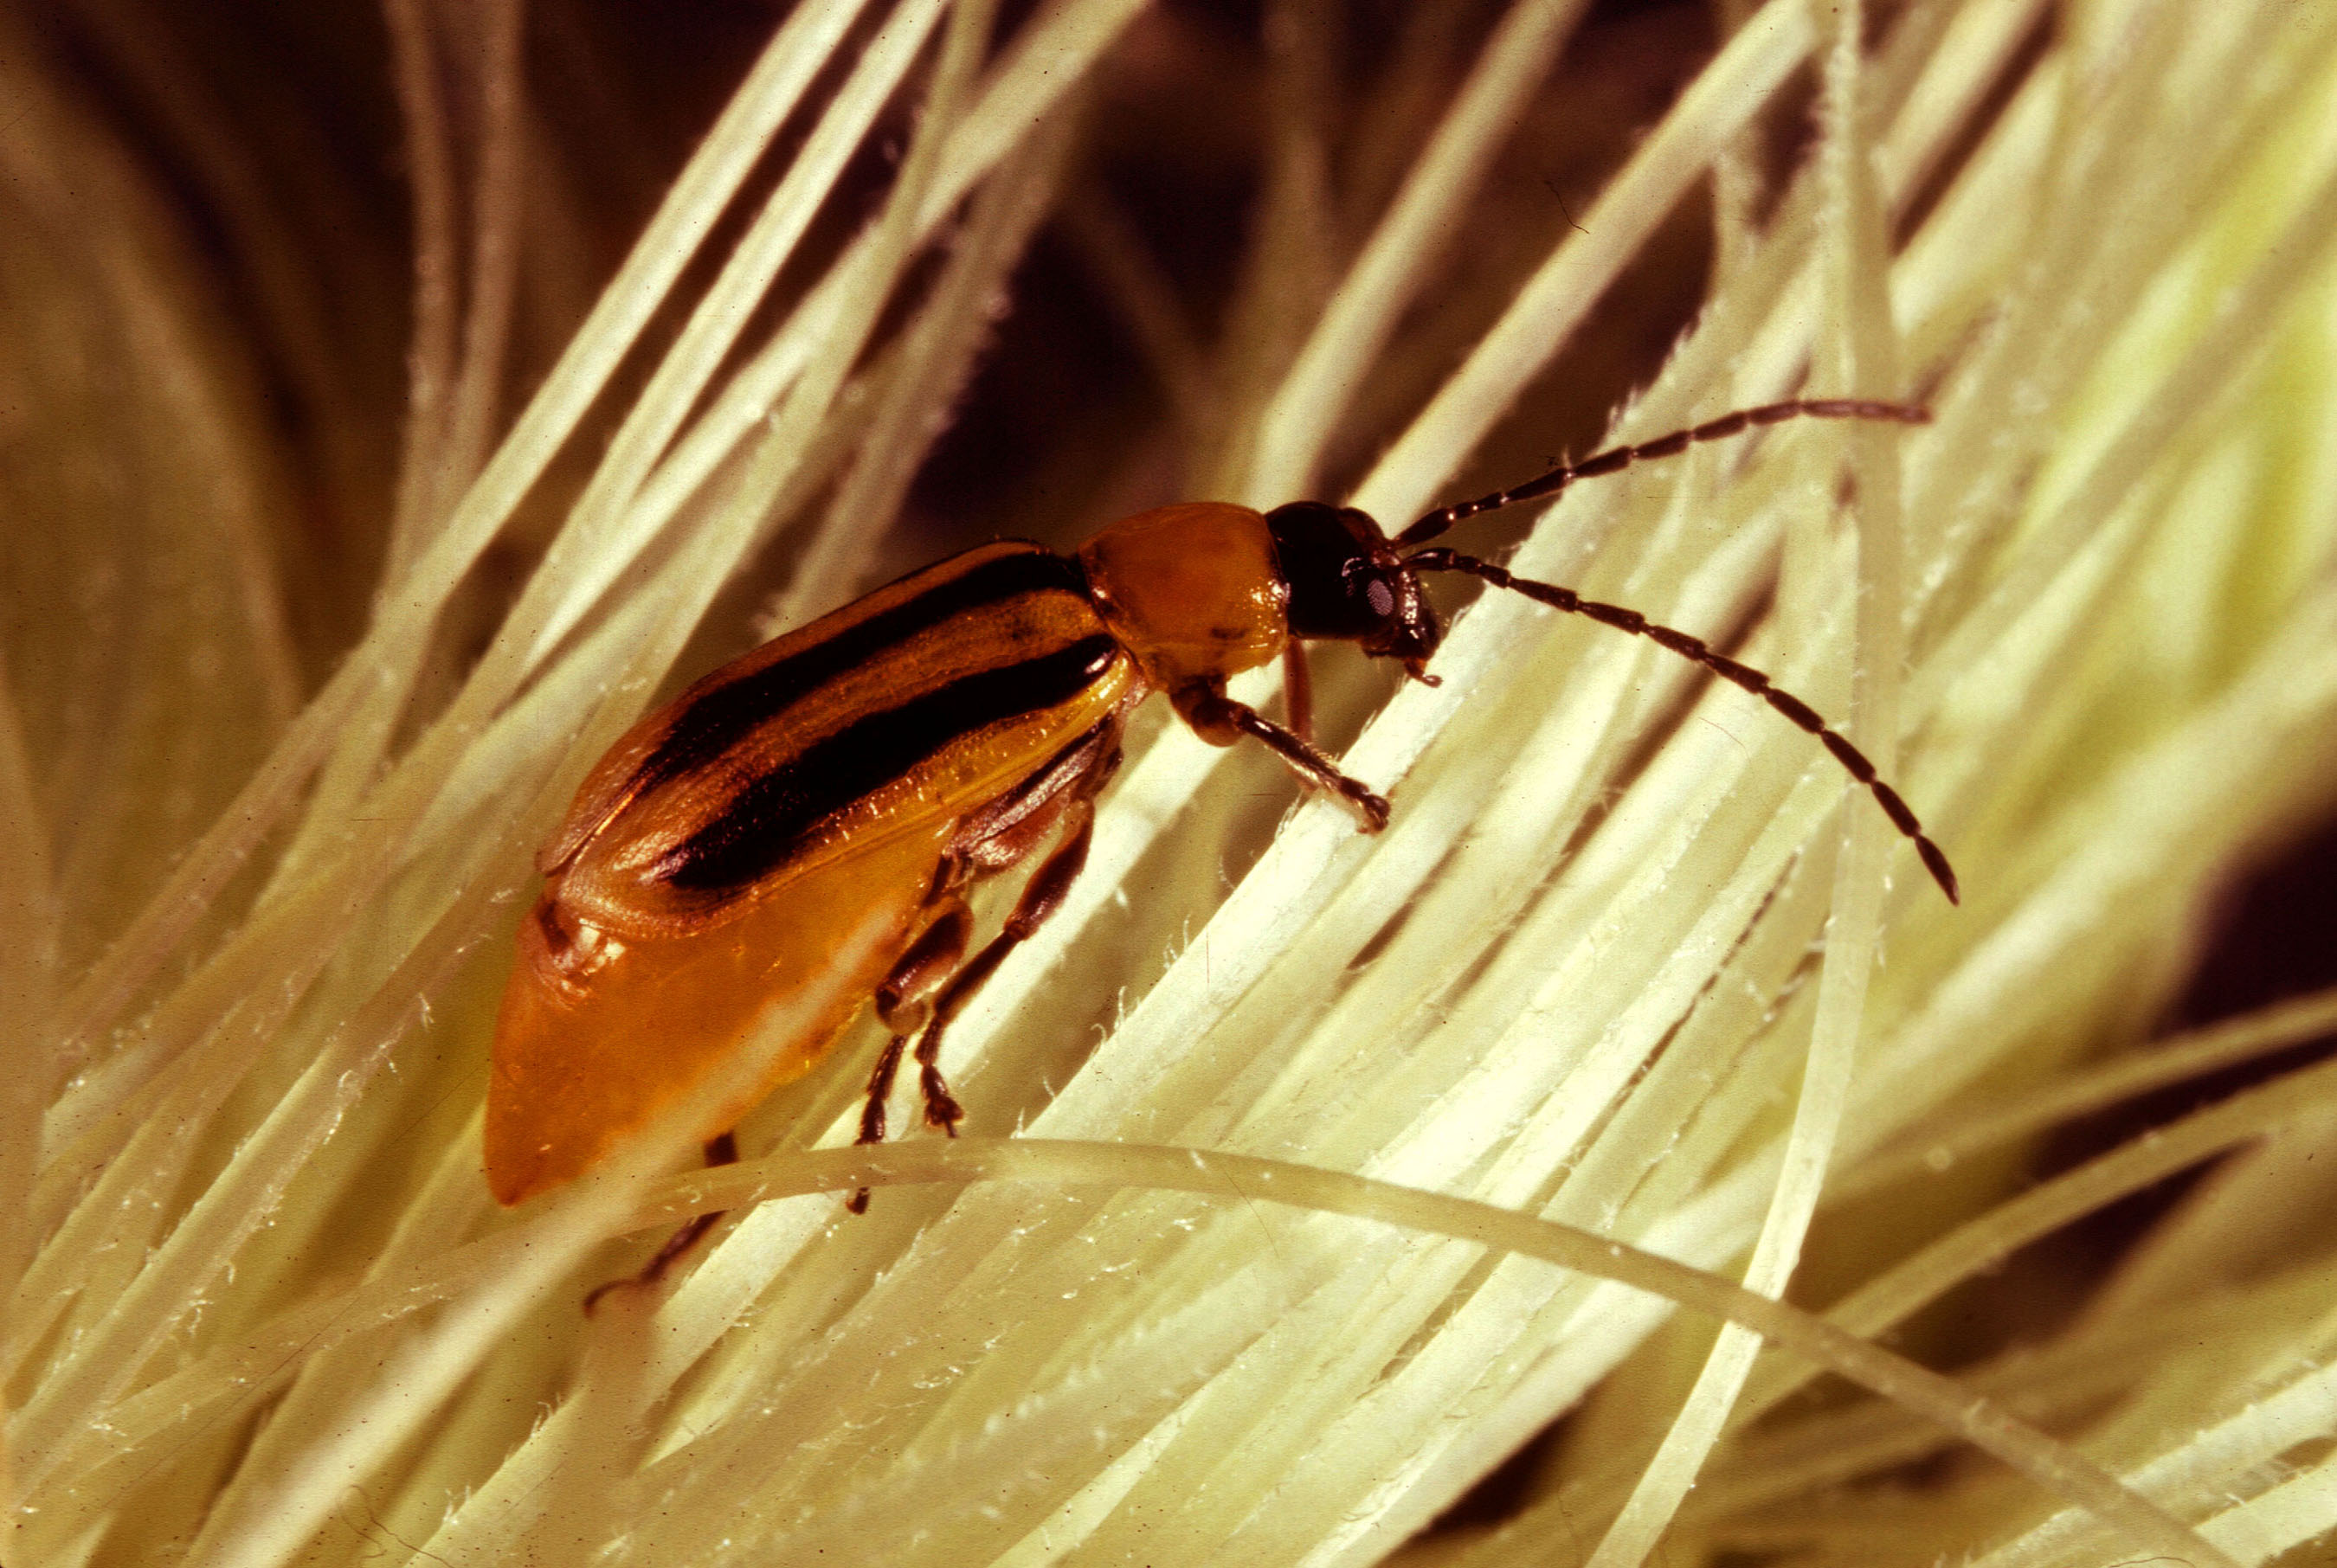 File:Western corn rootworm.jpg